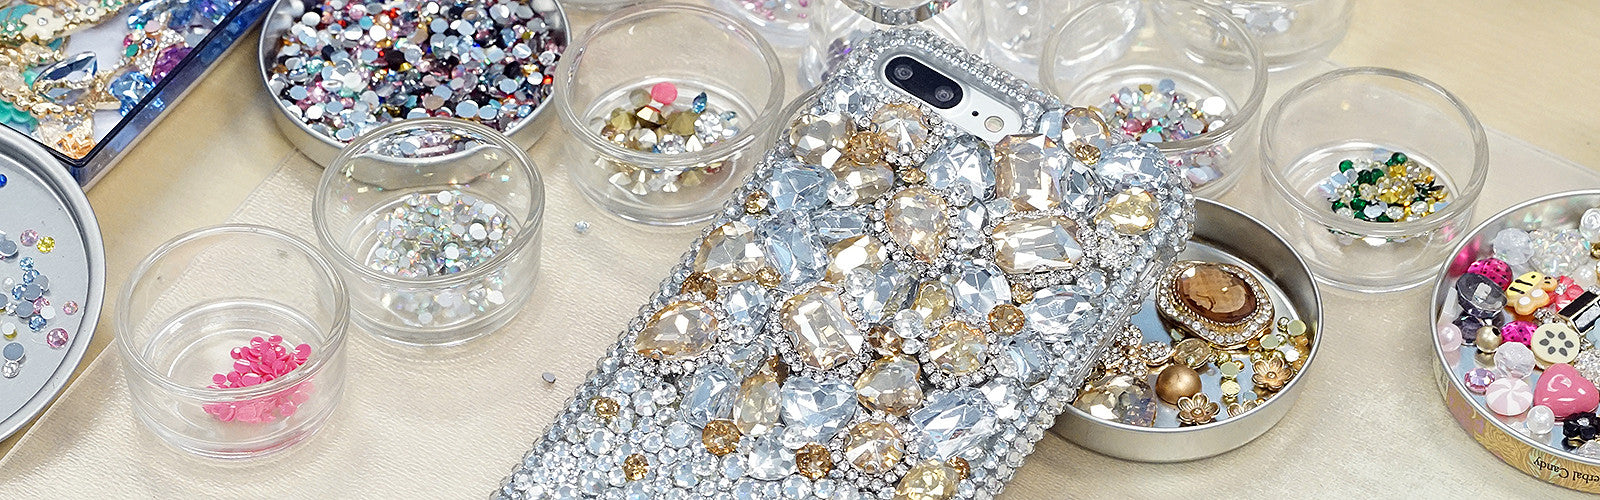 gemstone iphone 7 case